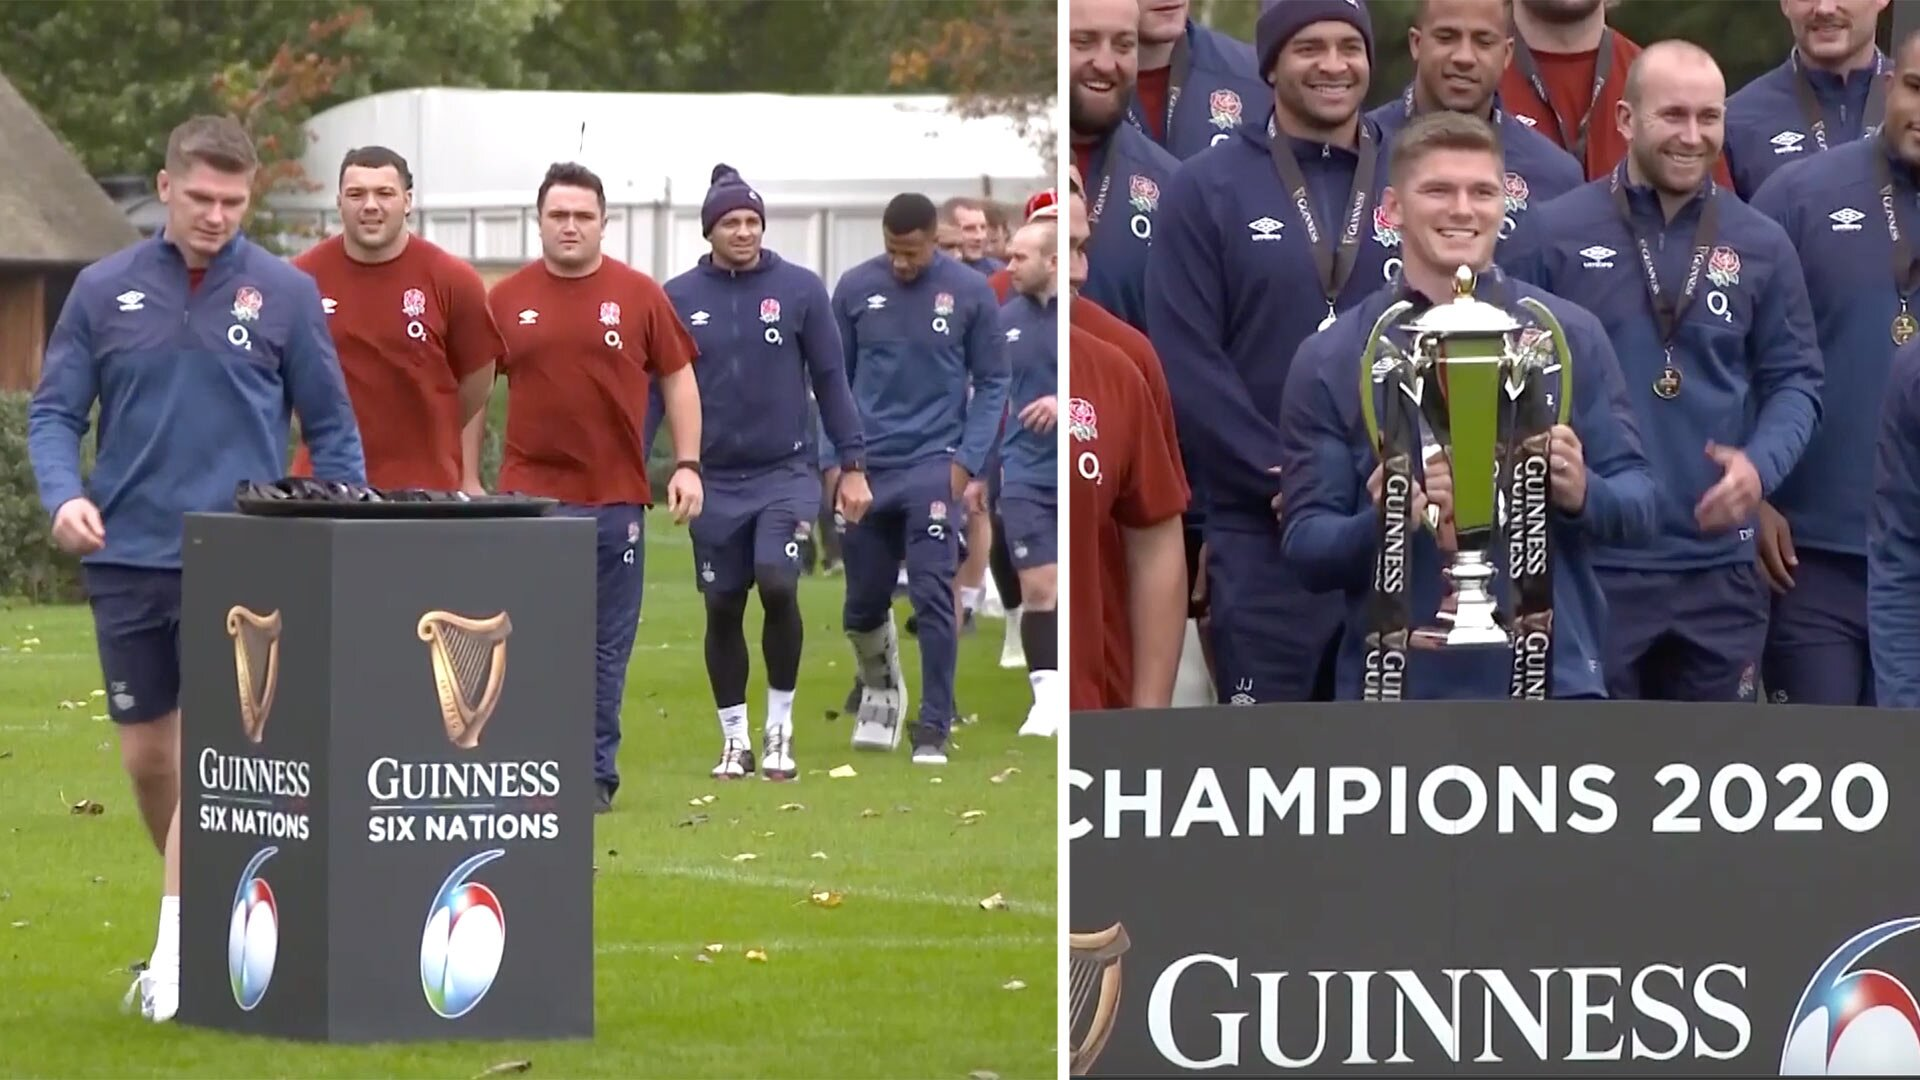 England have just released their surreal Six Nations trophy ceremony